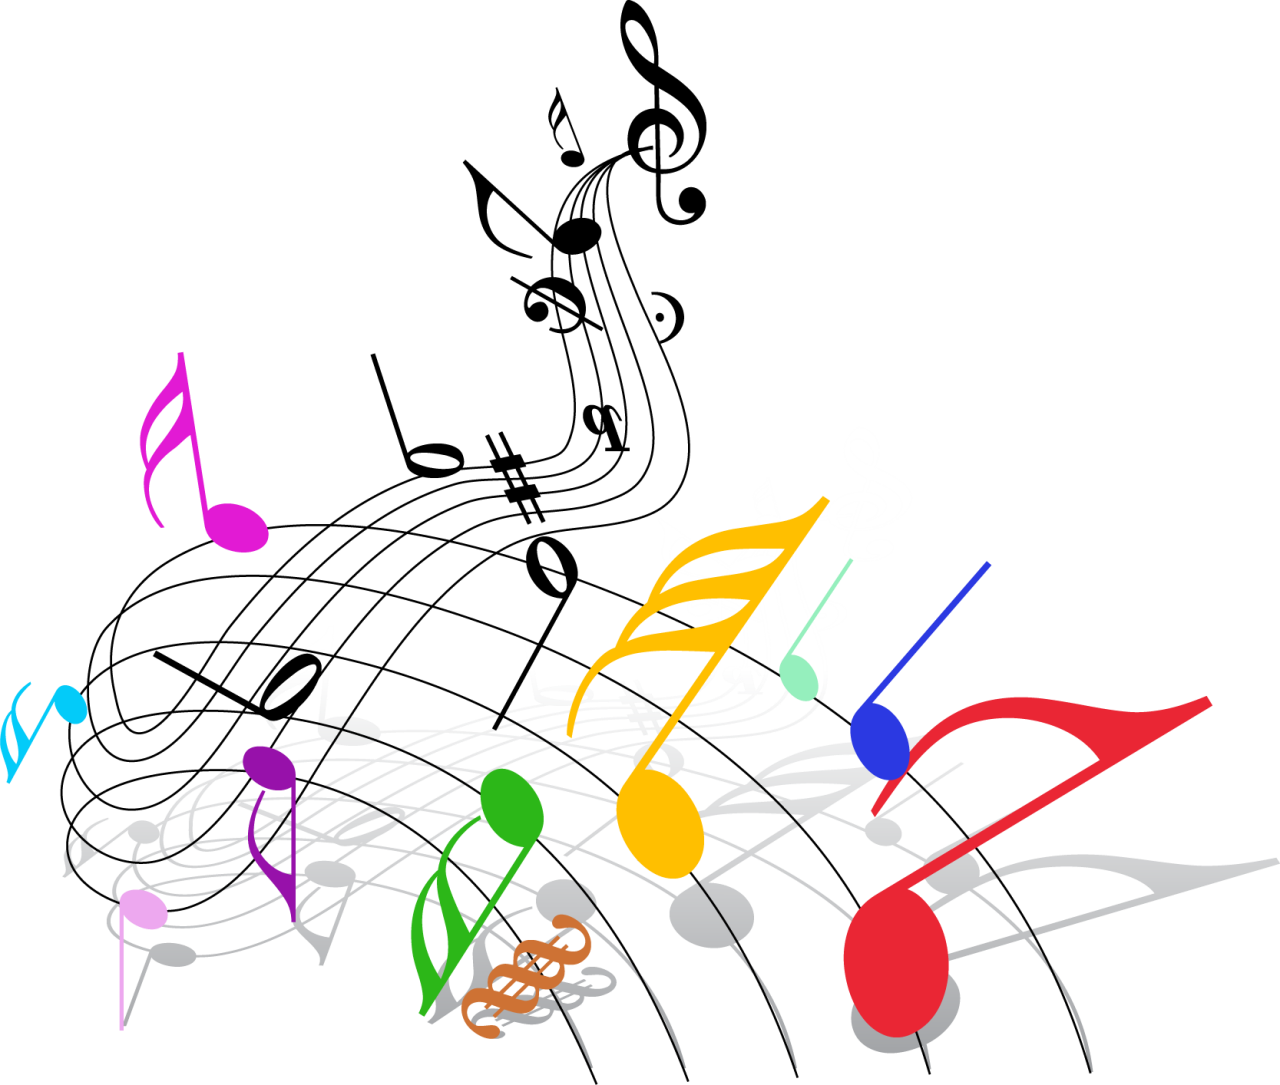 Download And Share Clipart About Musical Note Musical Theatre Clip Art Colorful Png Music Notes Find More High Quality Free Transparent Png Clipart Images Png